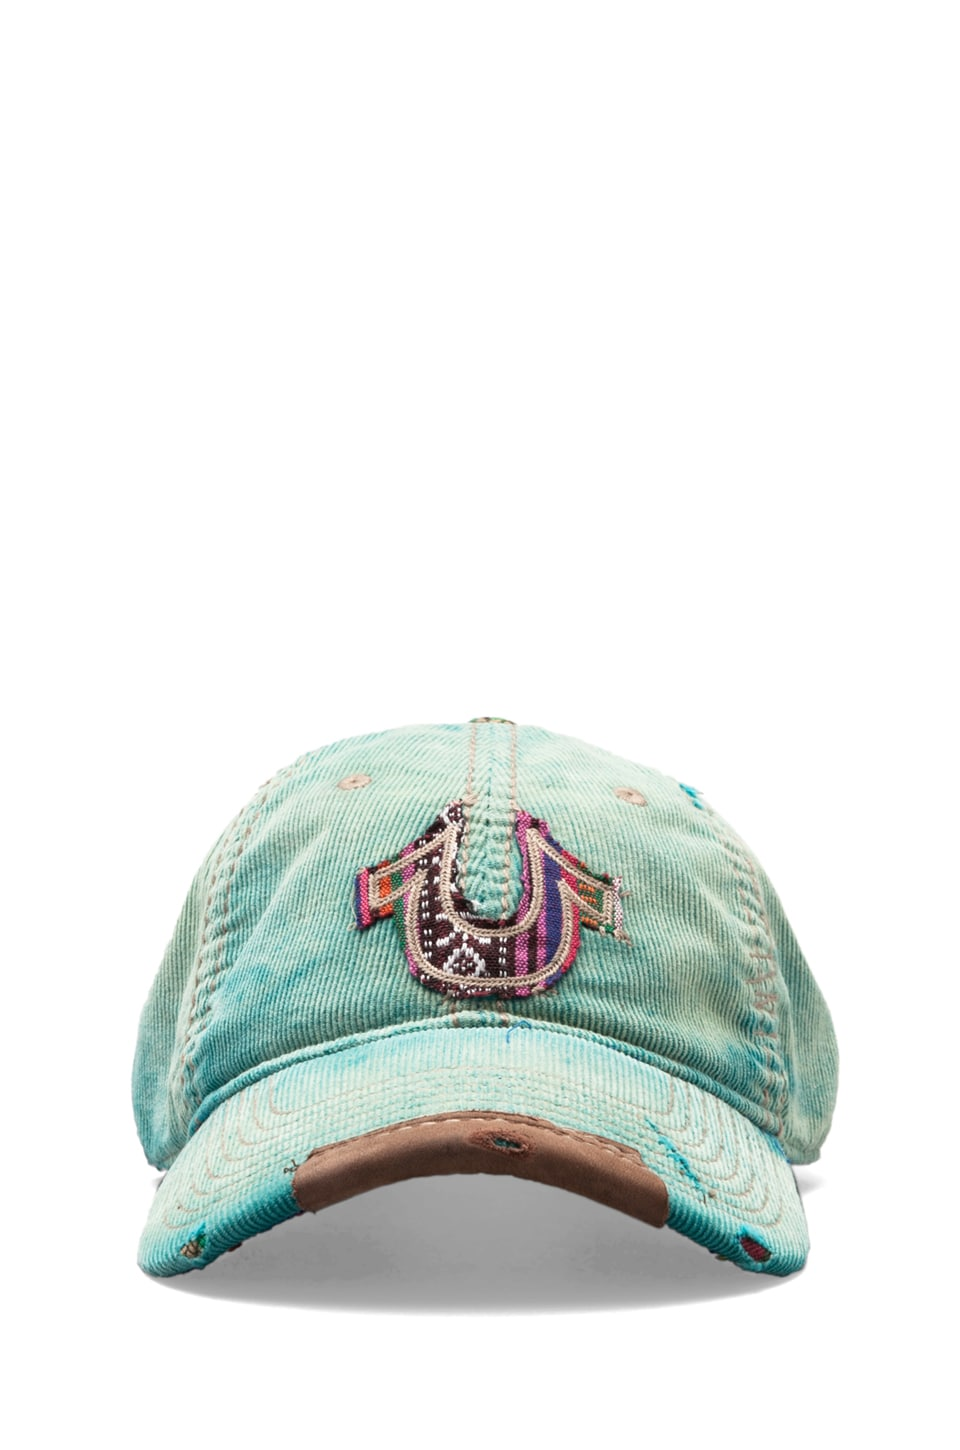 True Religion Corduroy Baseball Cap in Cerulean Blue